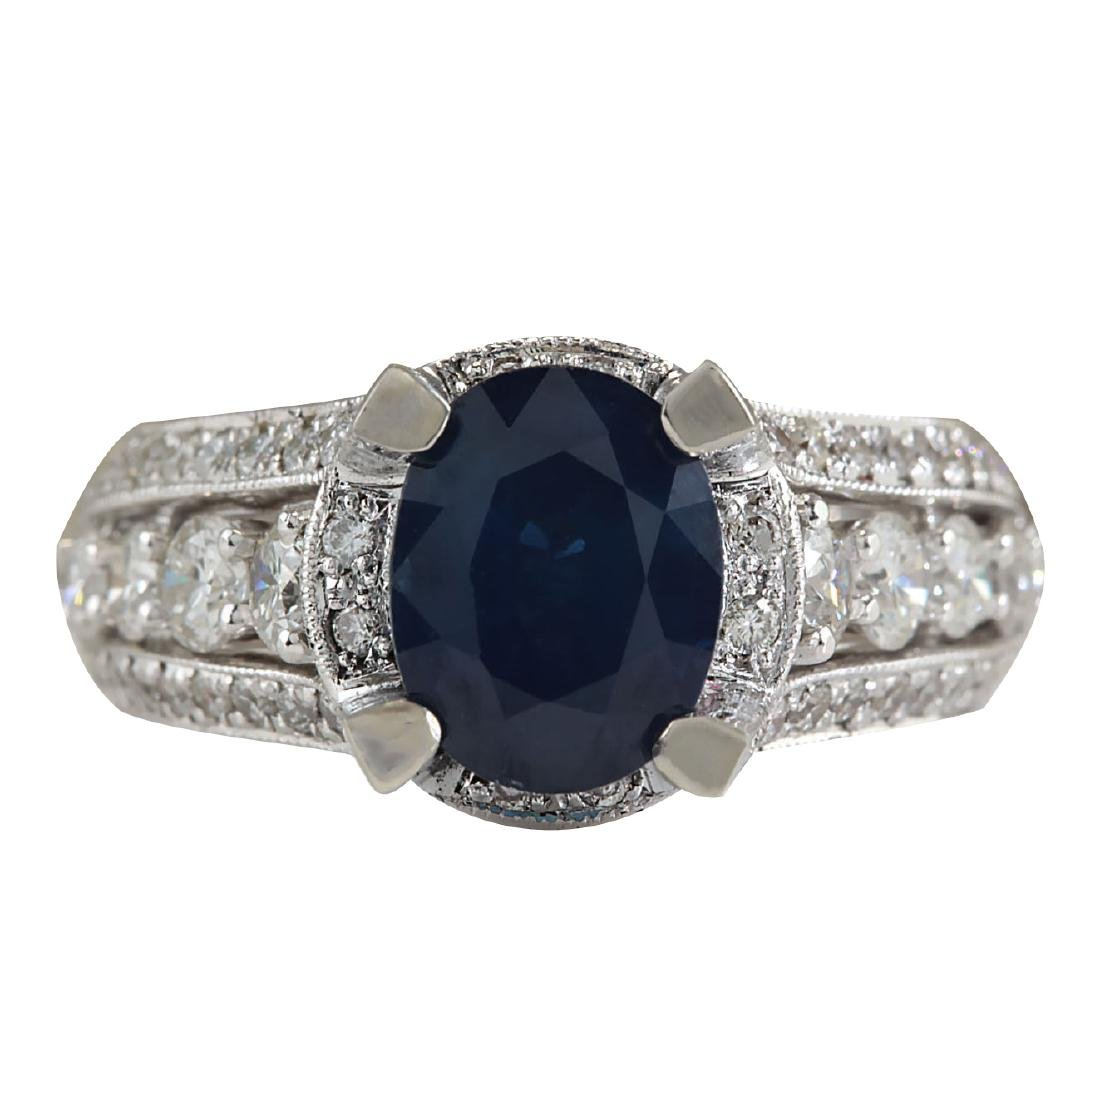 4.45CTW Natural Blue Sapphire And Diamond Ring In 18K